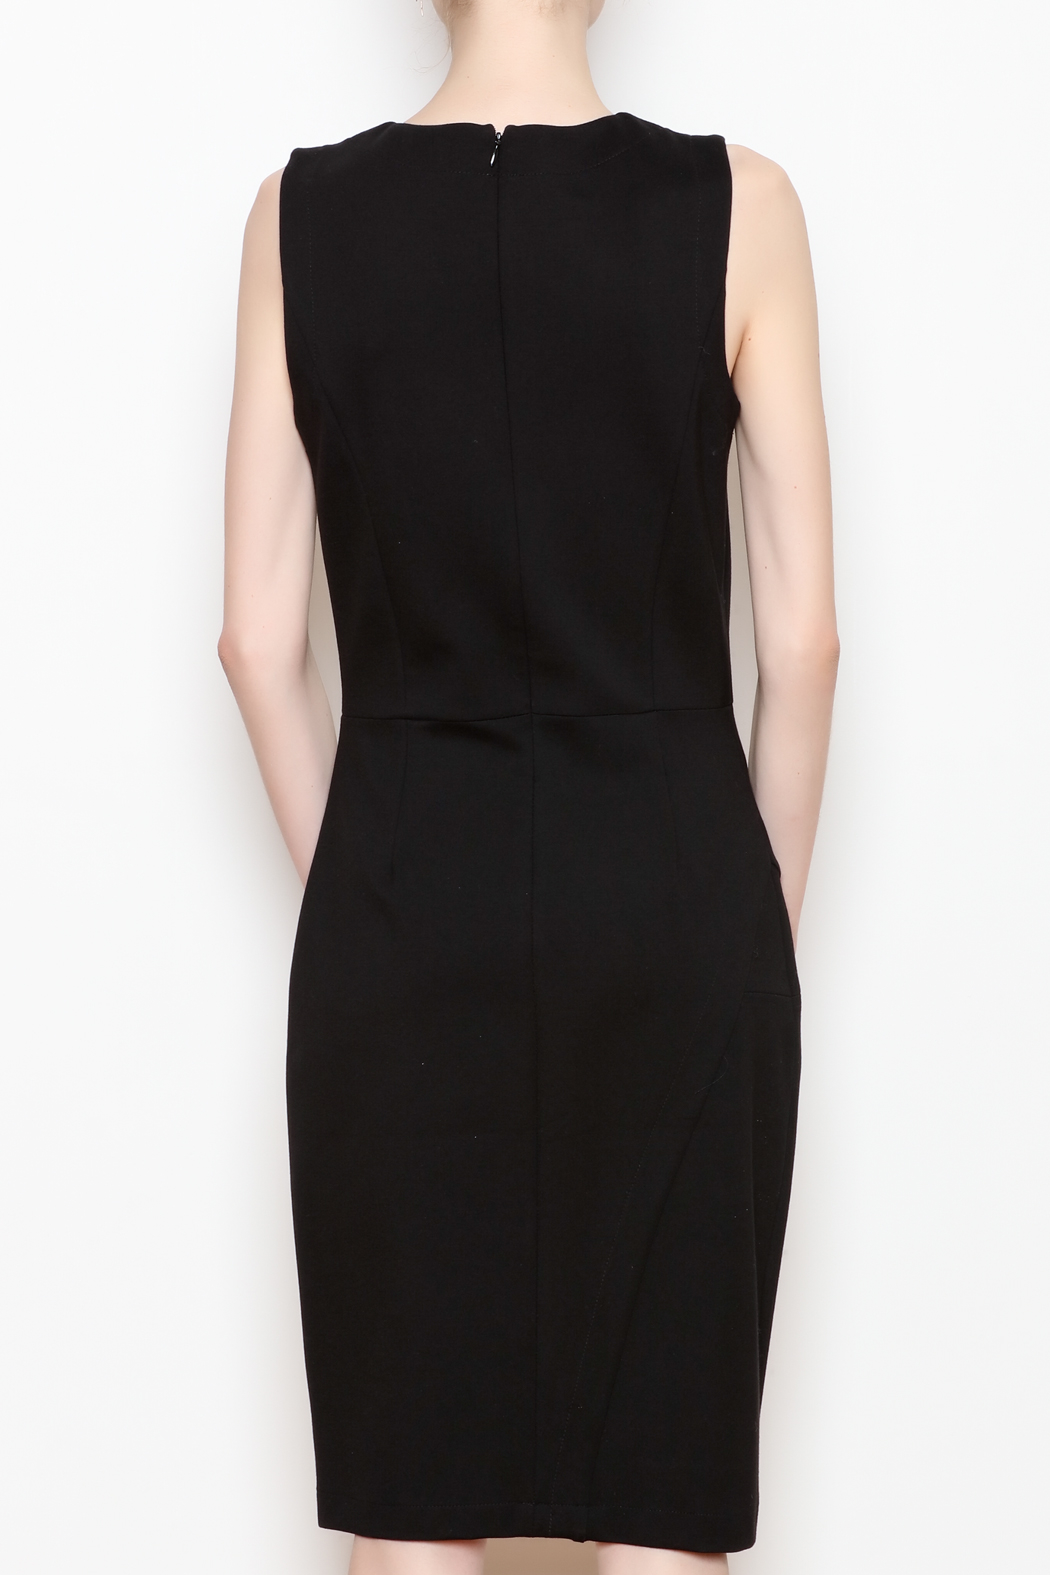 26Line by MLNK Black Sheath Dress - Back Cropped Image